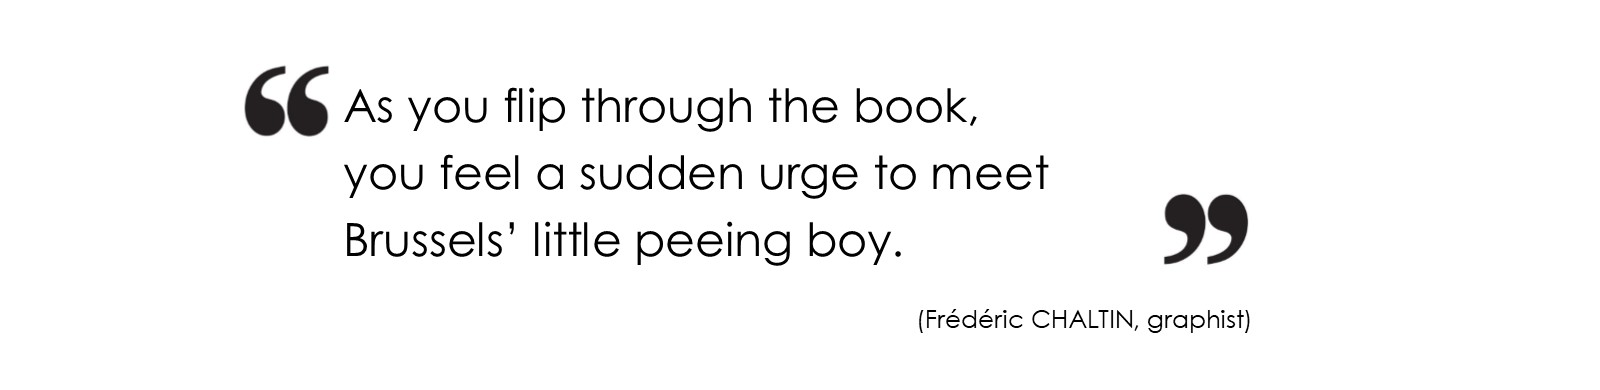 As you flip through the book, you feel a sudden urge to meet Brussels' little peeing boy. (Frédéric CHALTIN, graphist)